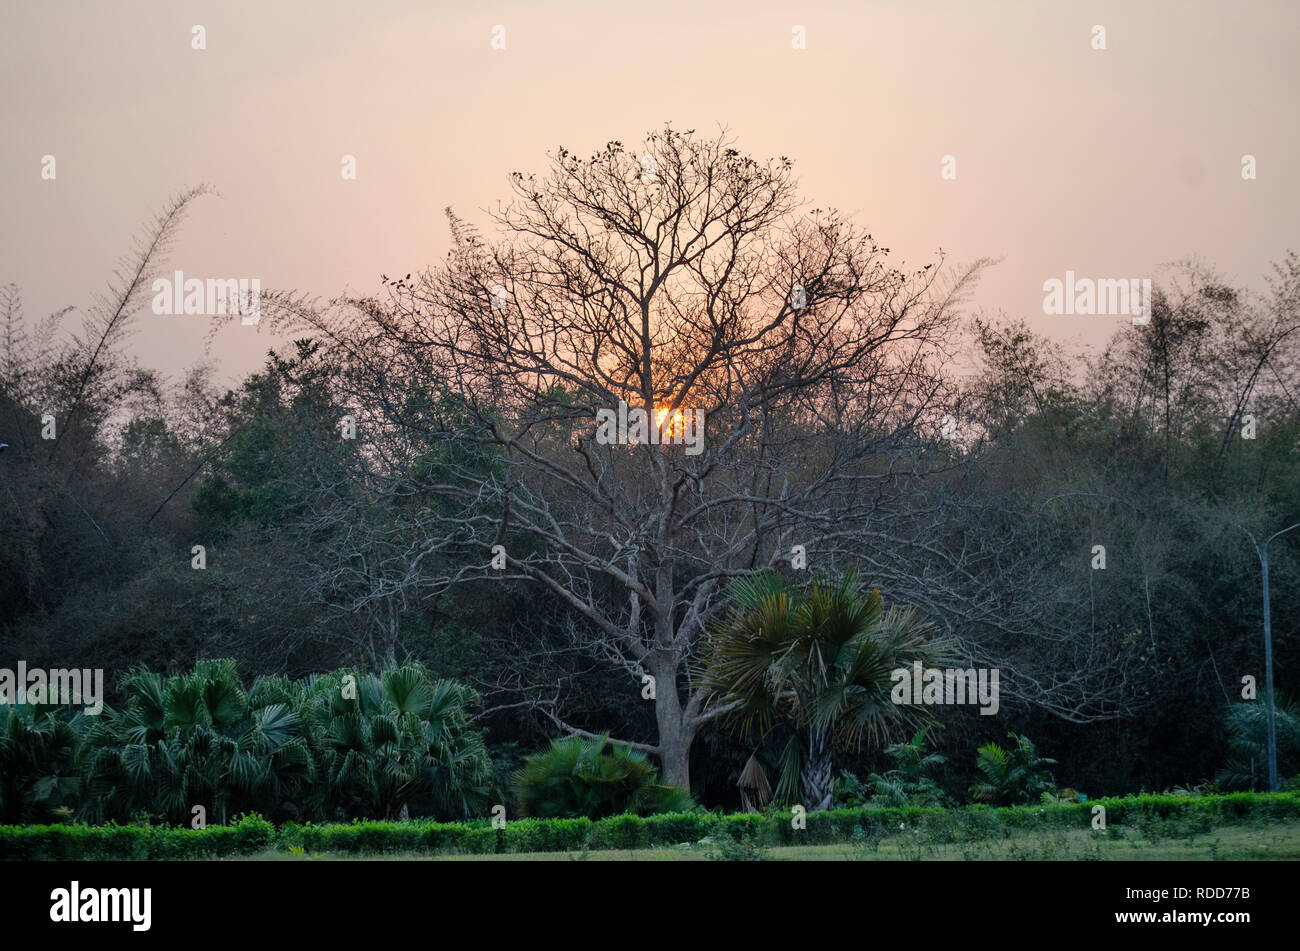 A leafless tree against a sunset. - Stock Image